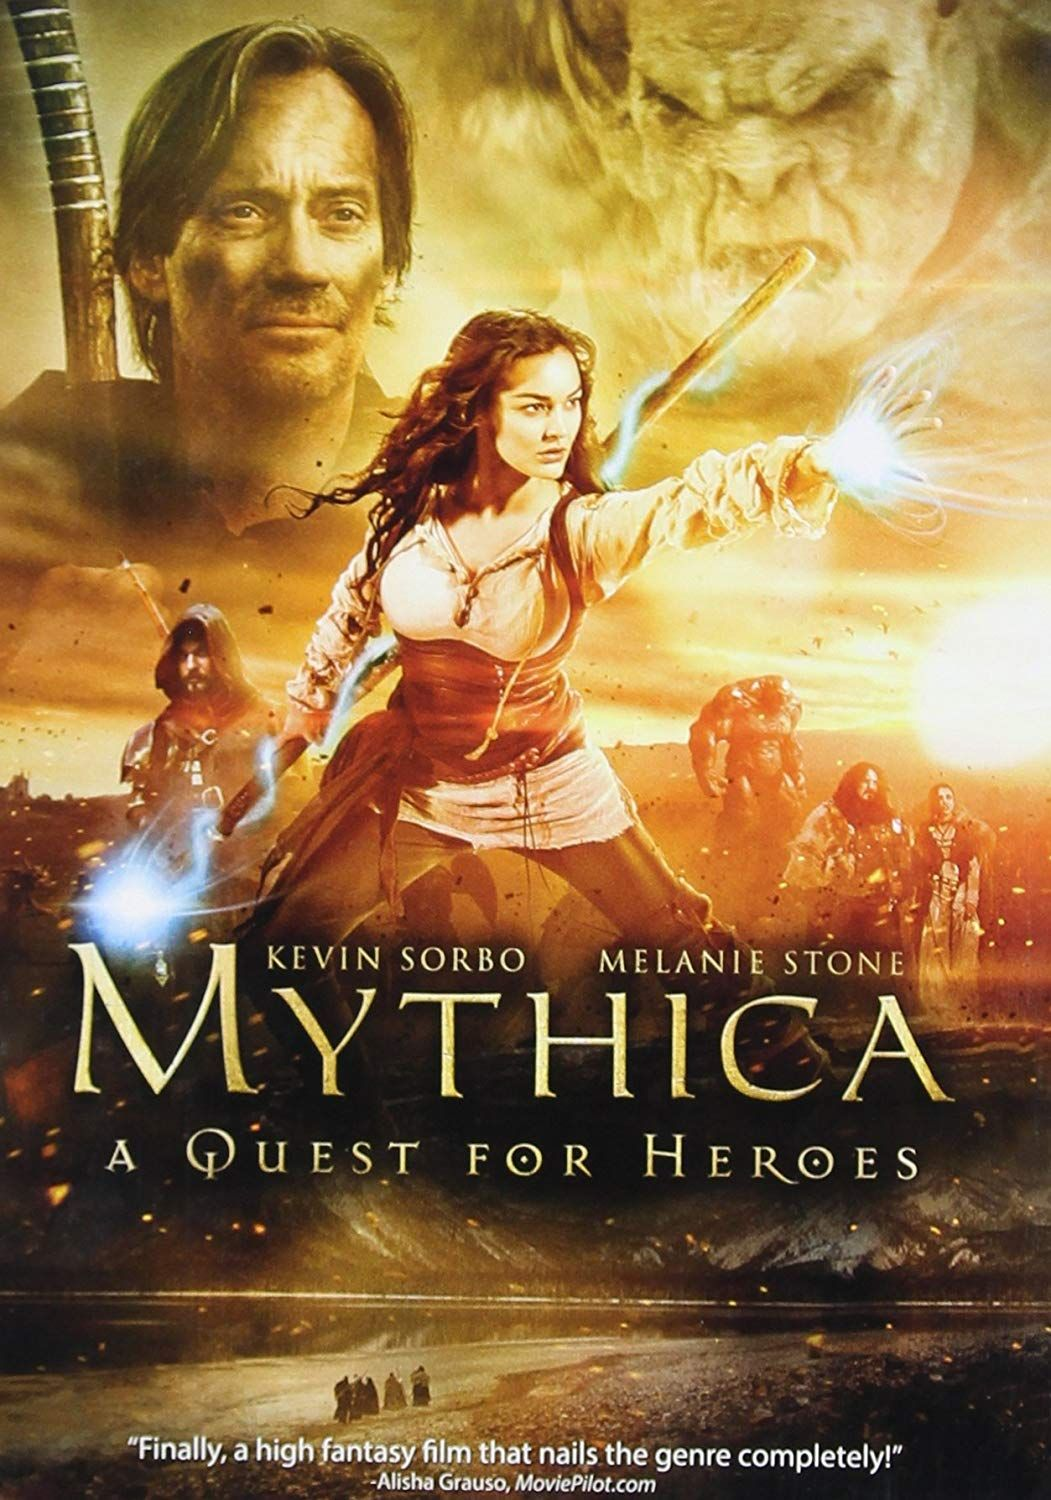 Mythica A Quest for Heroes Kevin Sorbo